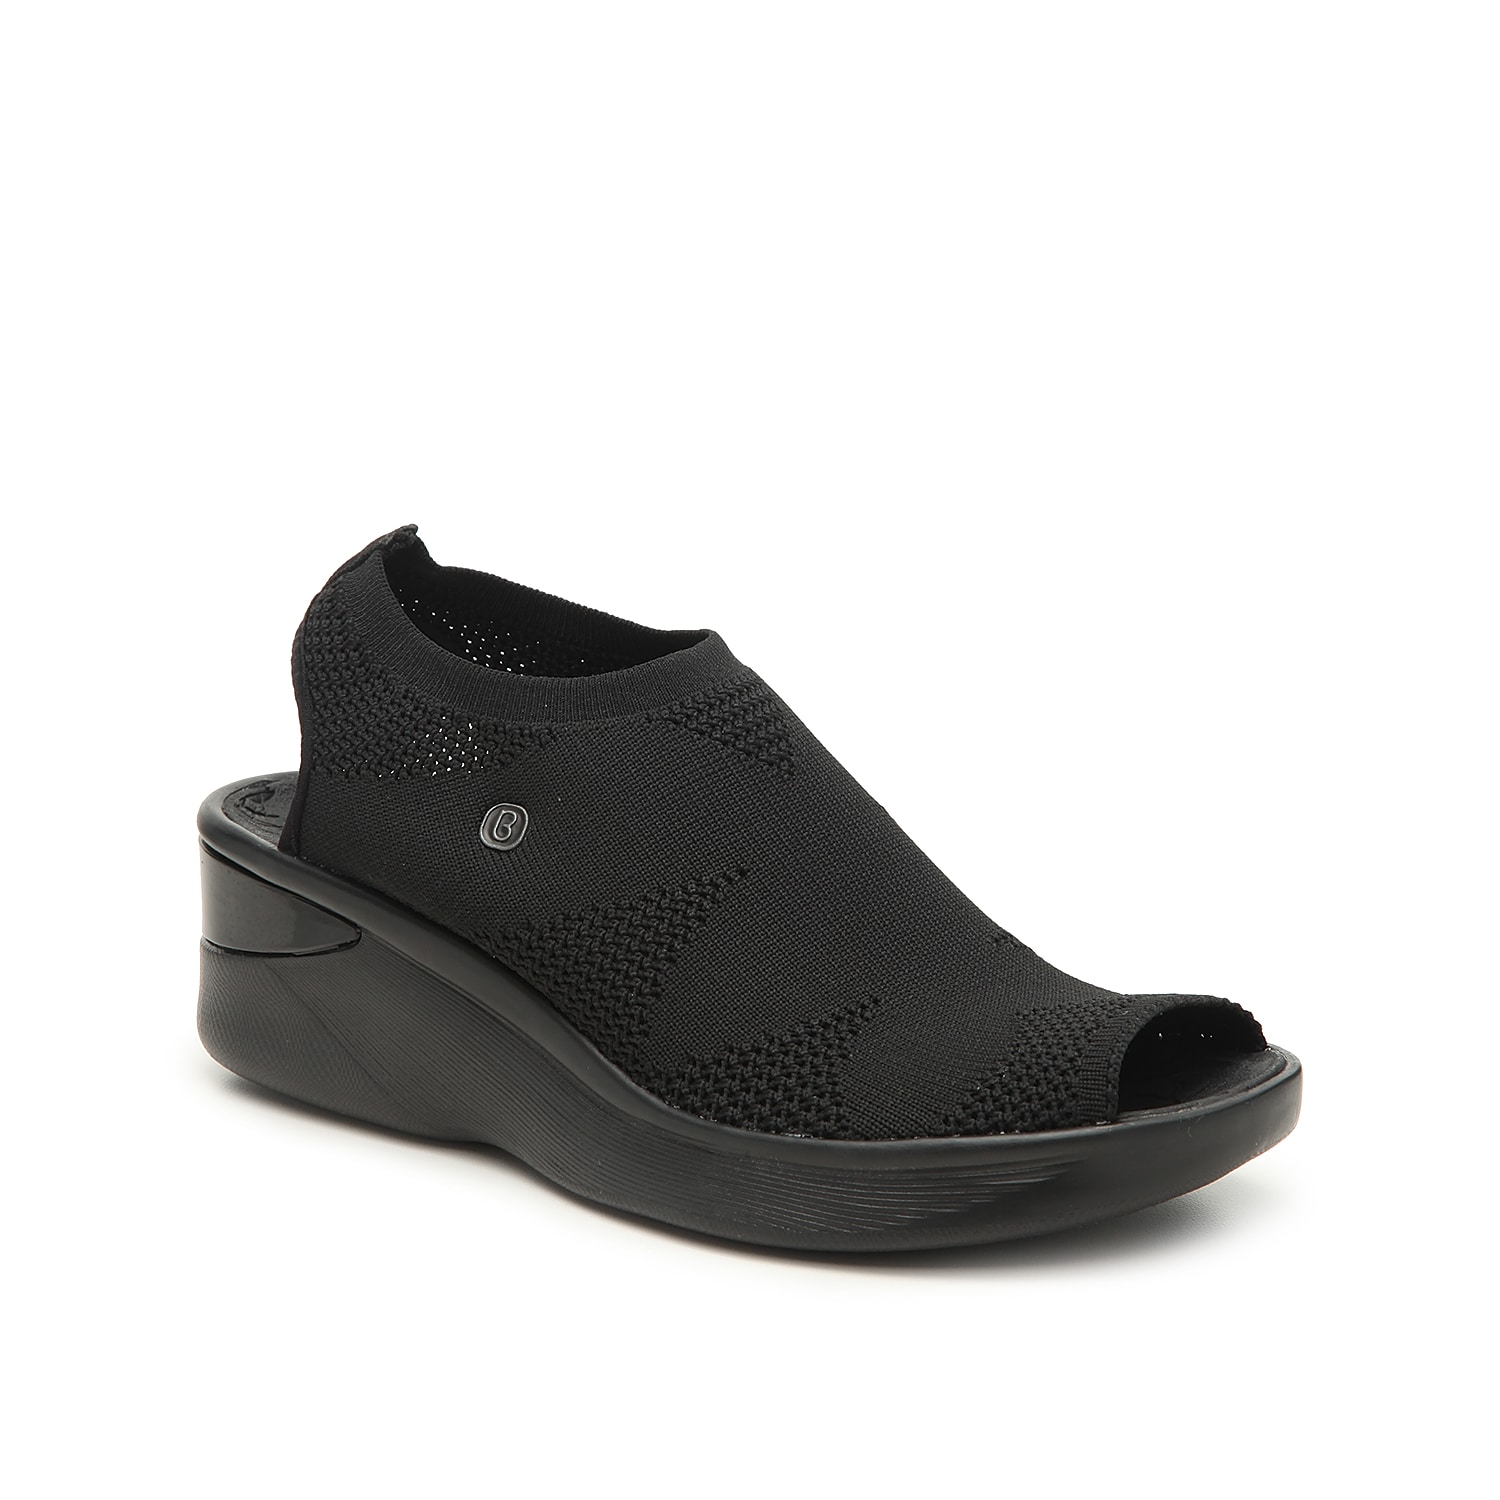 Combine fashion and function with the Secret sandal from BZees. With a stretch fabric design and BZees Cloud Technology footbed, these wedges will give you the support you need while staying stylish.